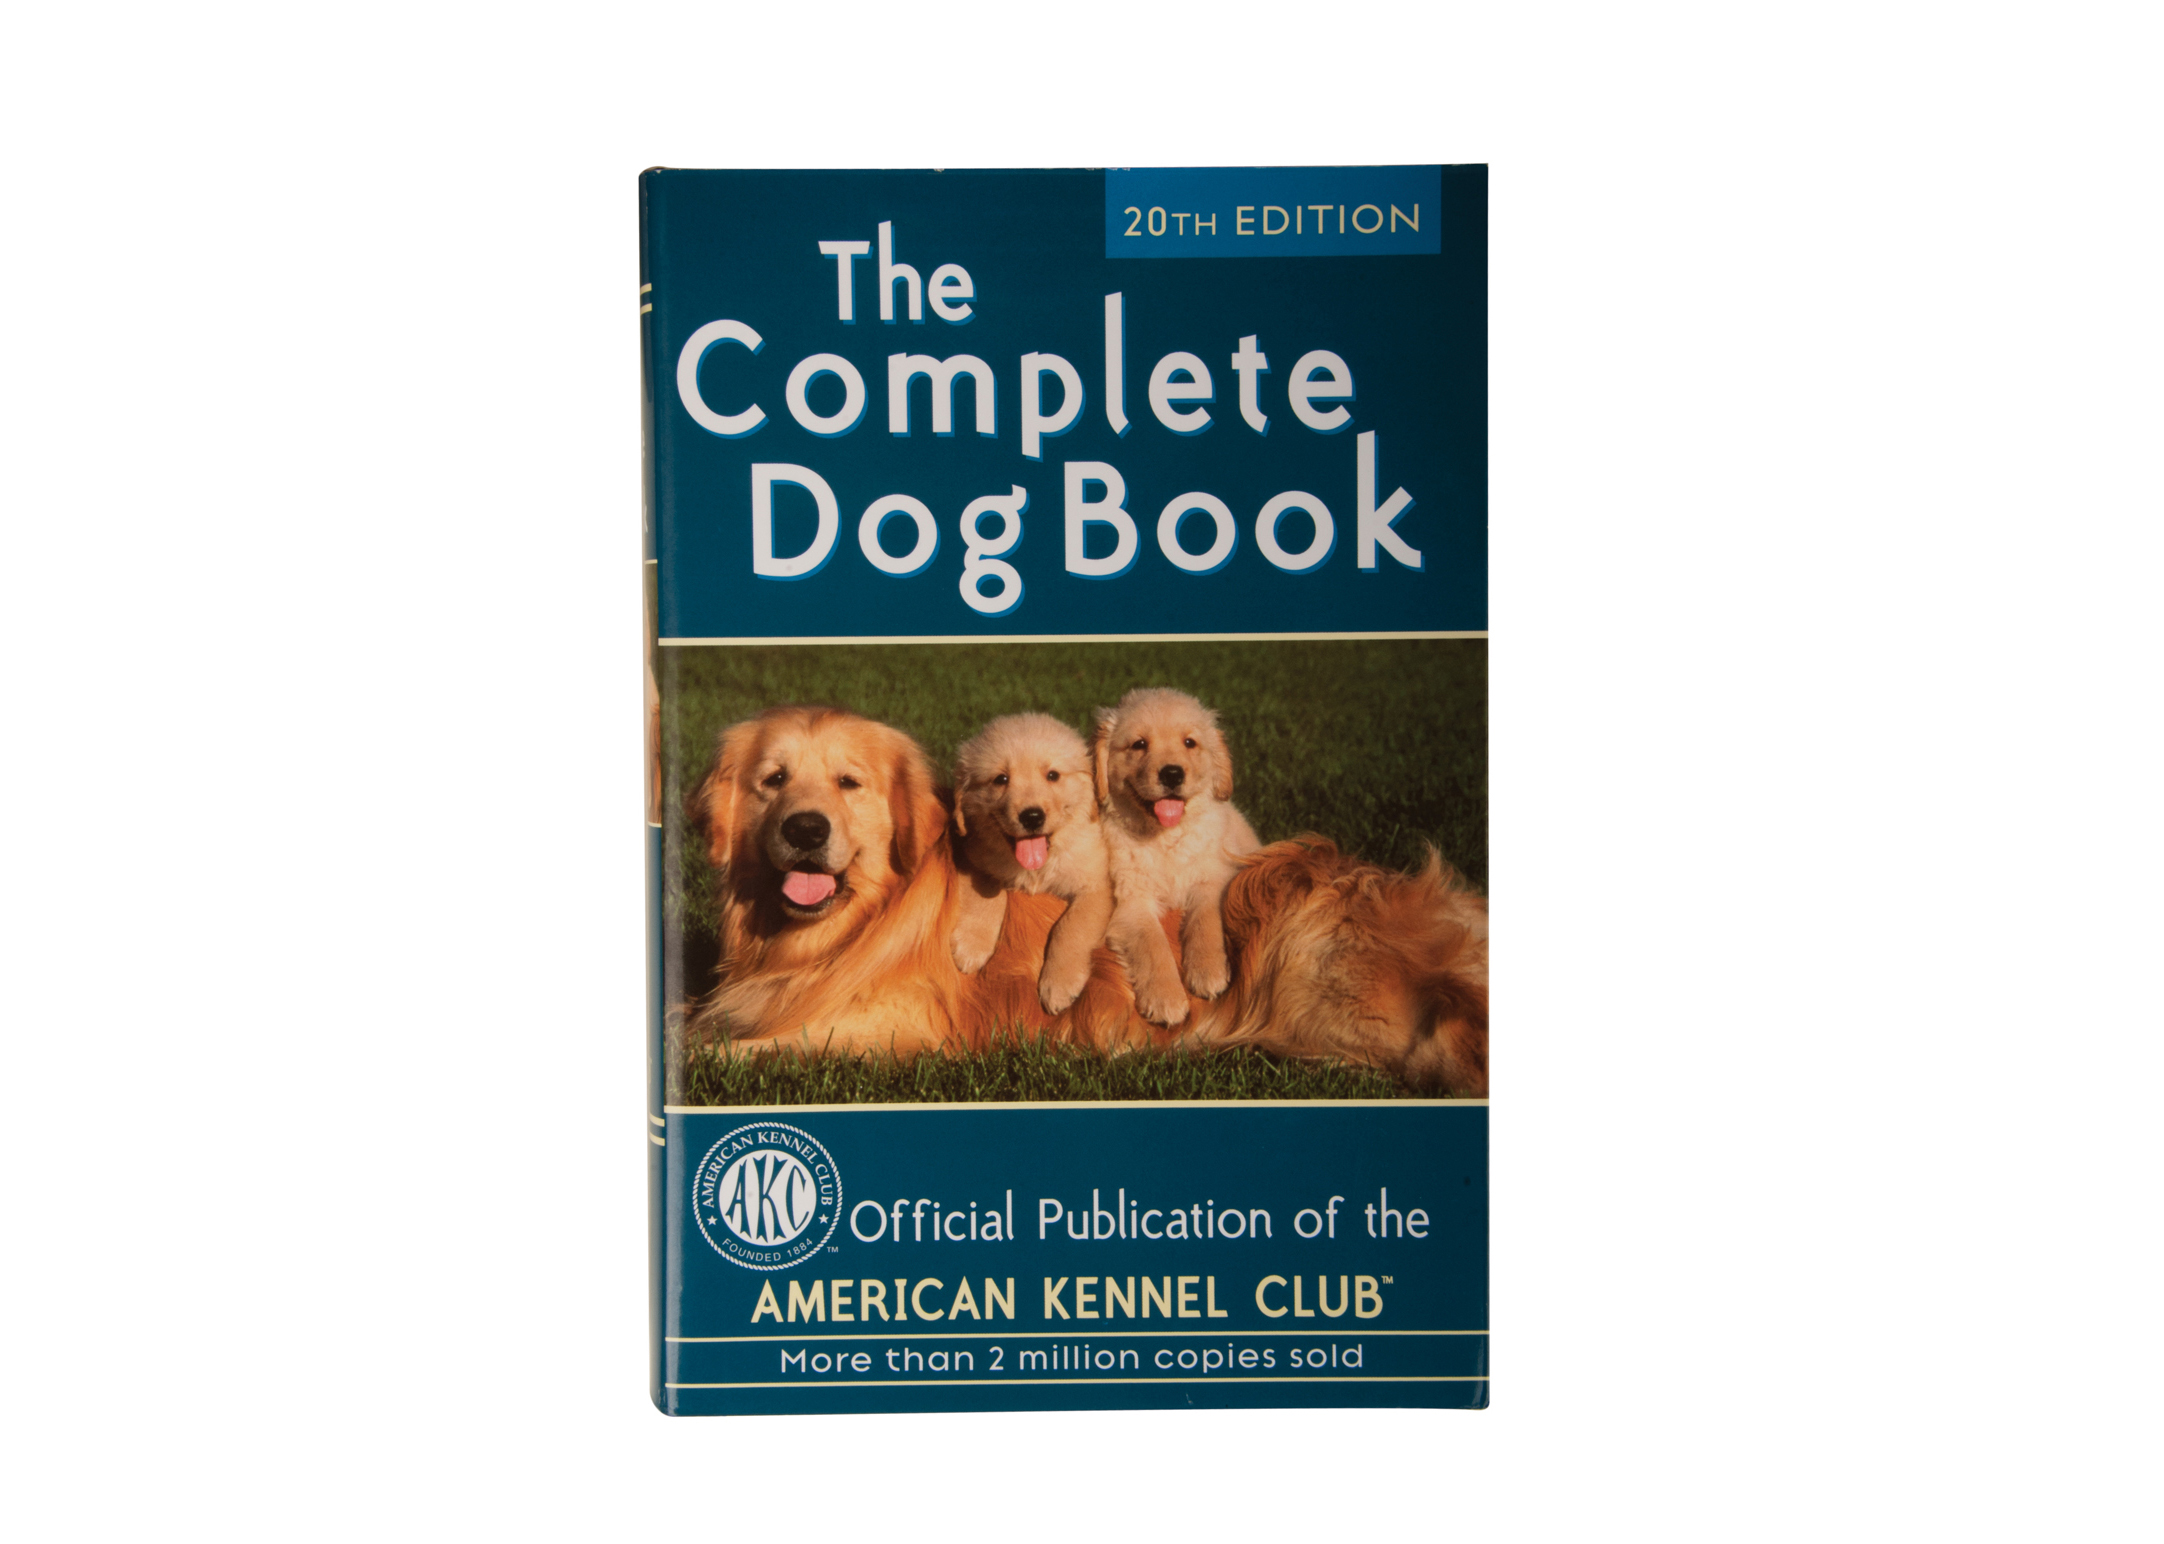 The Complete Dog Book 20 th Edition